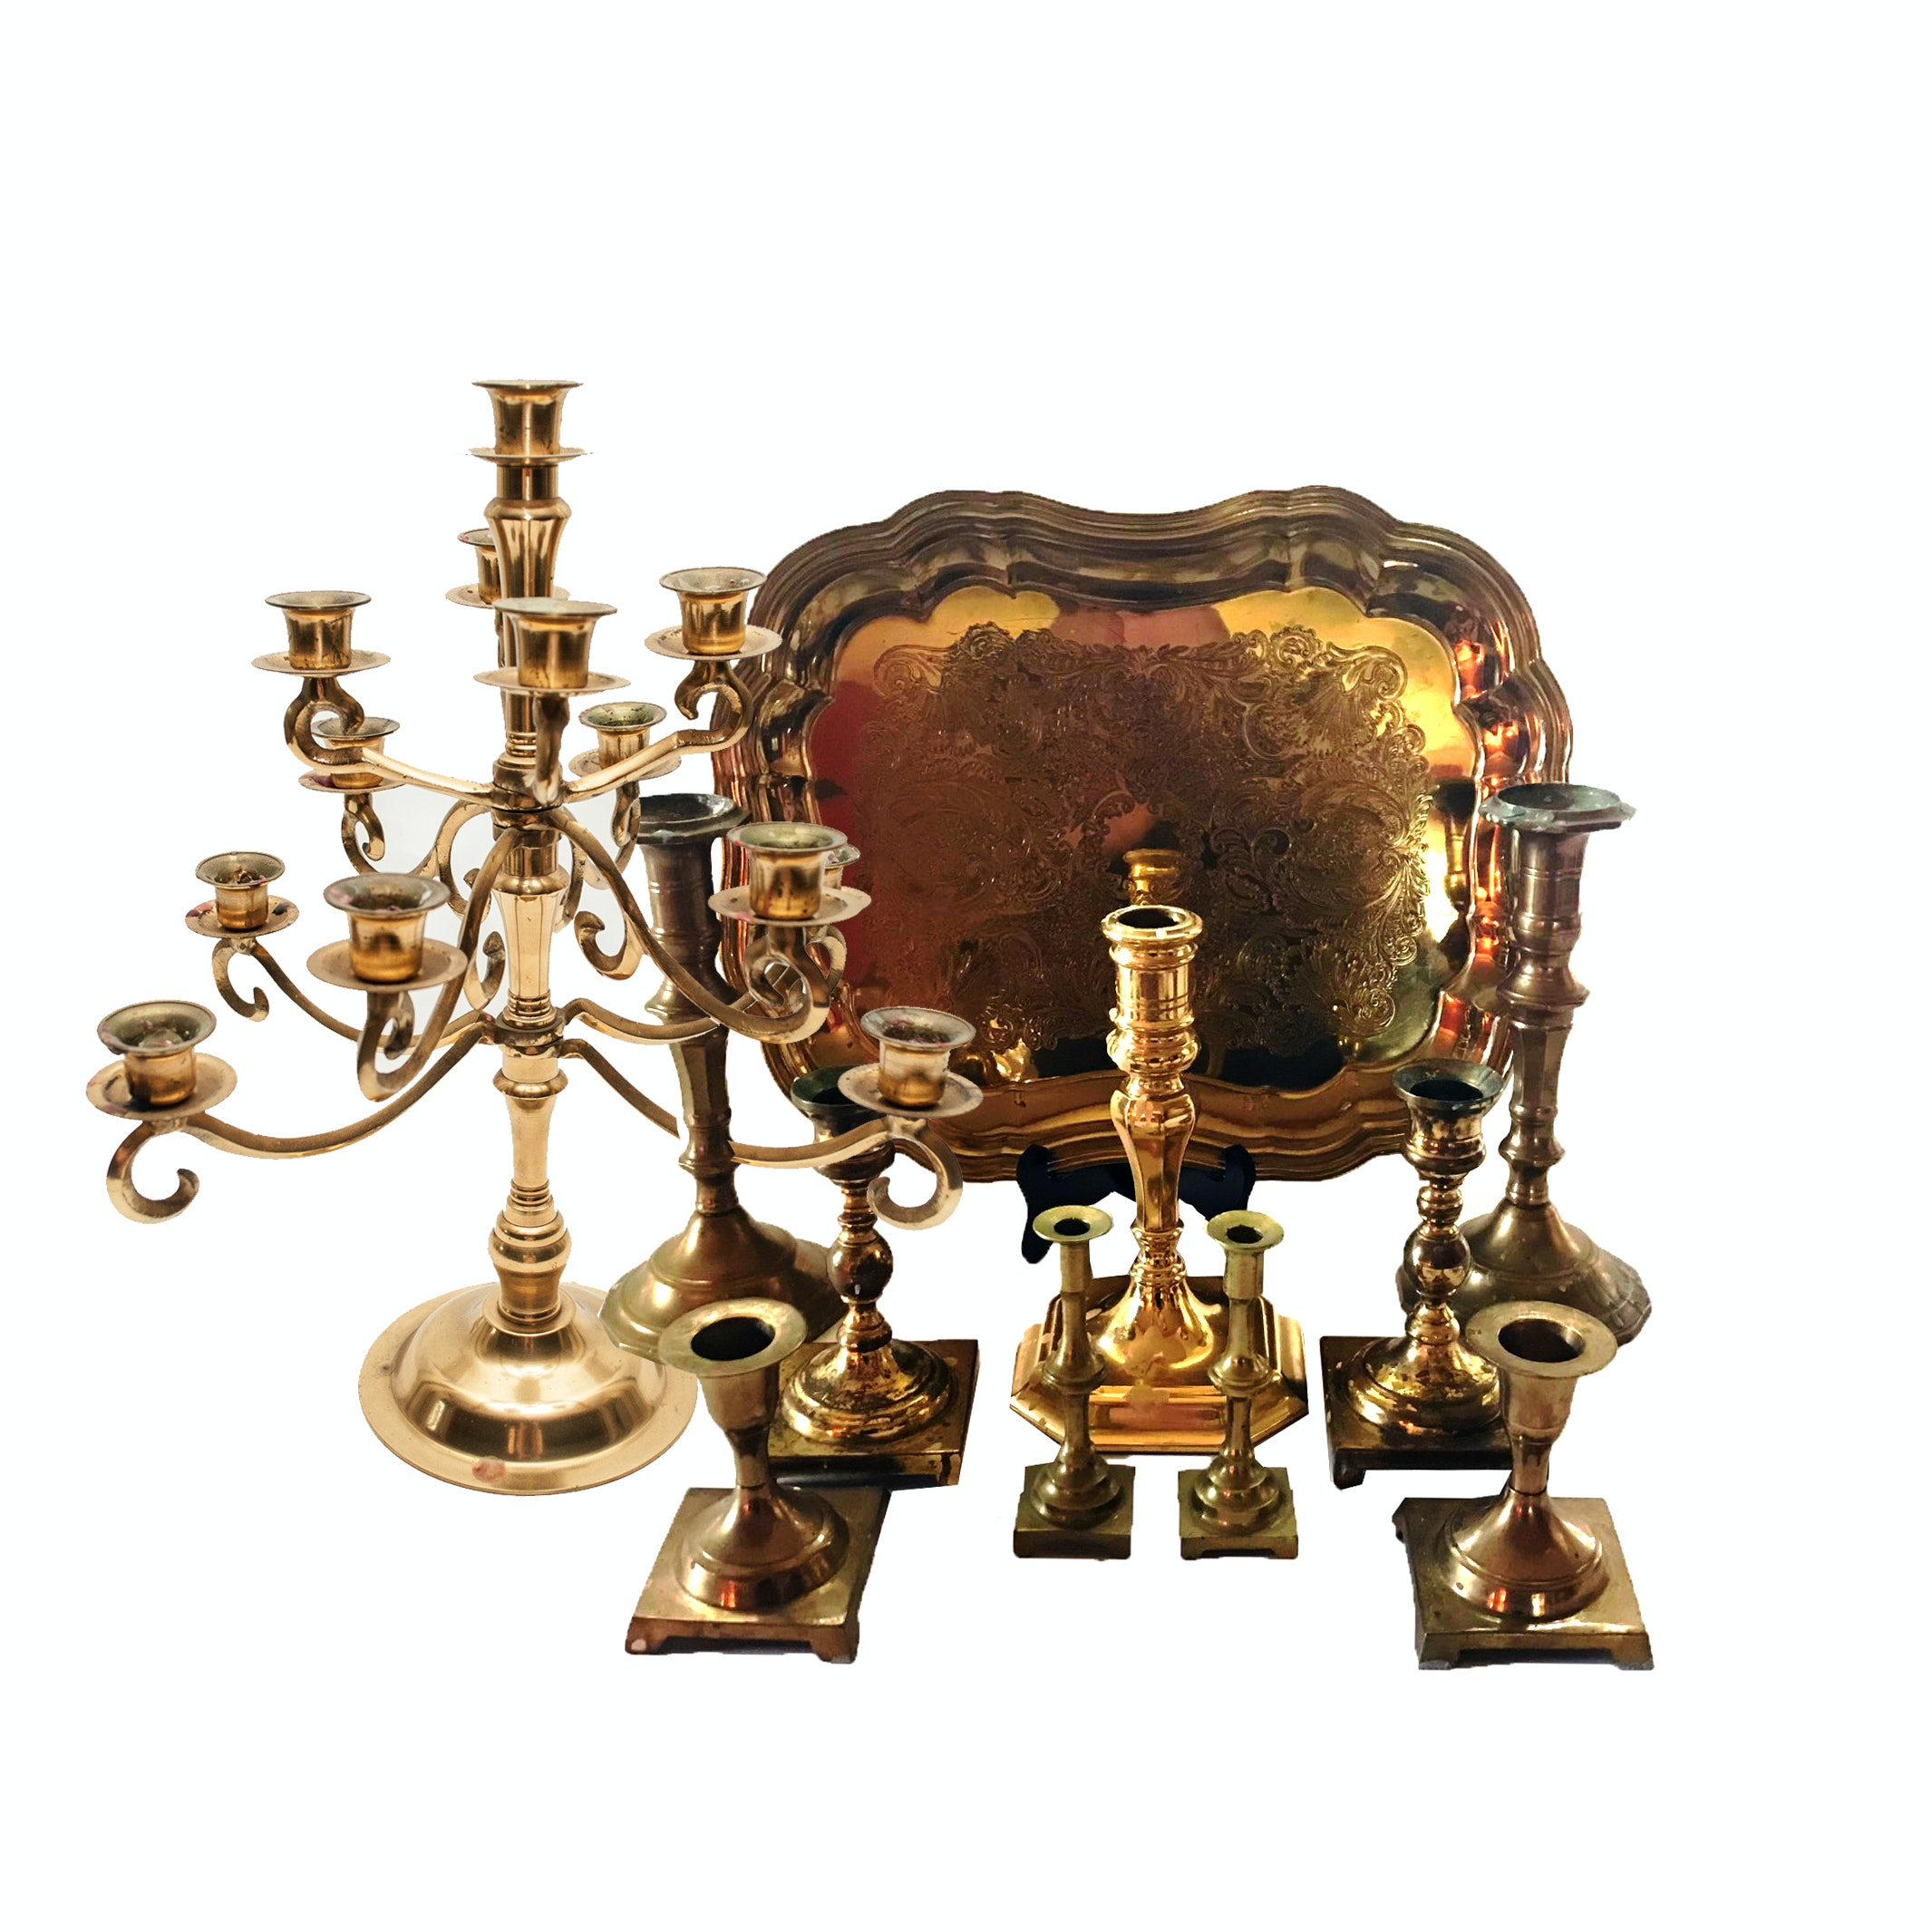 Brass Candlesticks and Candelabra with Serving Tray Including Baldwin